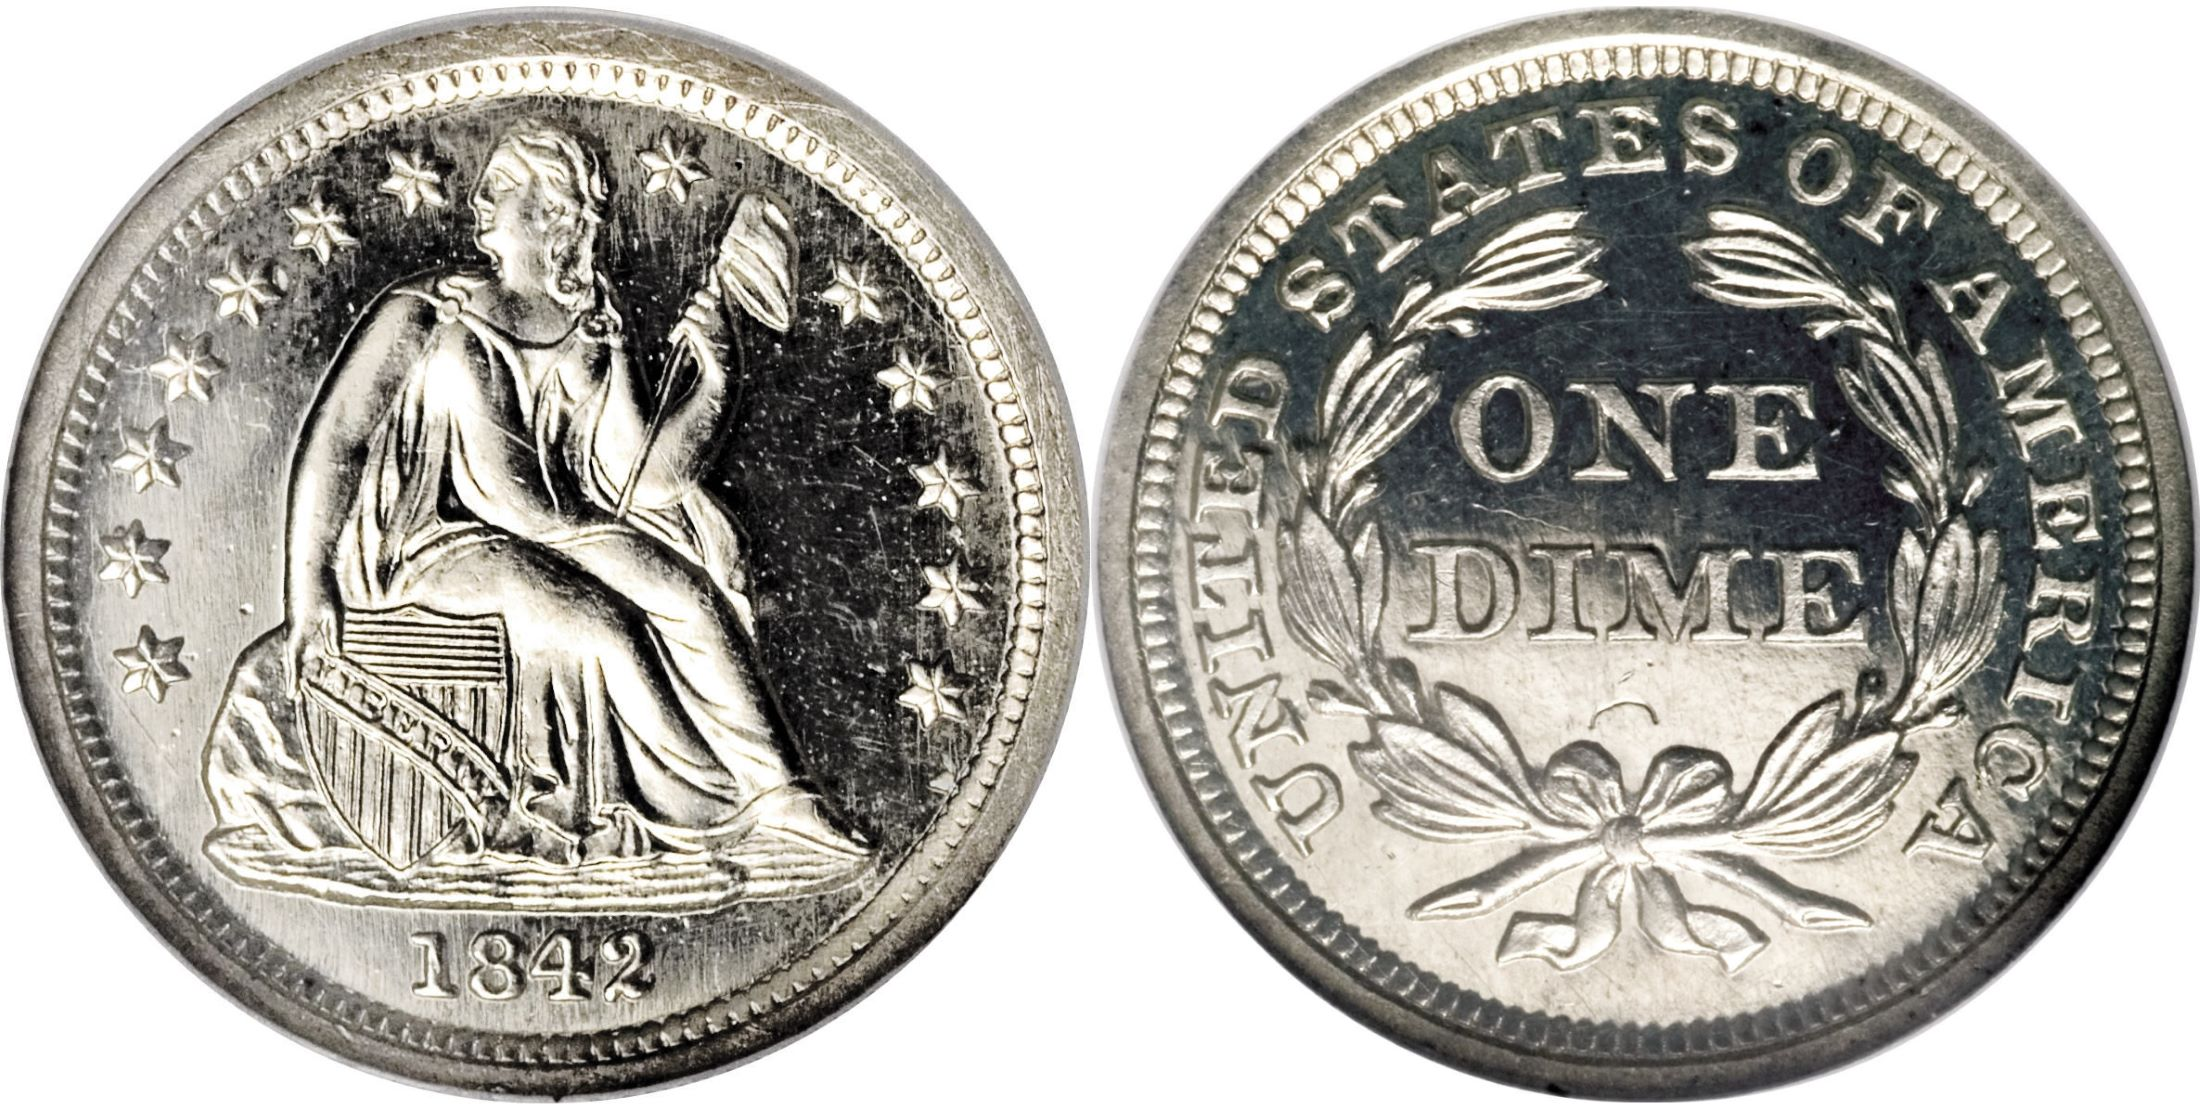 """PR64CA estimated grade<BR>Image courtesy of <a href=""""http://www.ha.com"""" target=""""_blank"""">Heritage Numismatic Auctions</a>"""